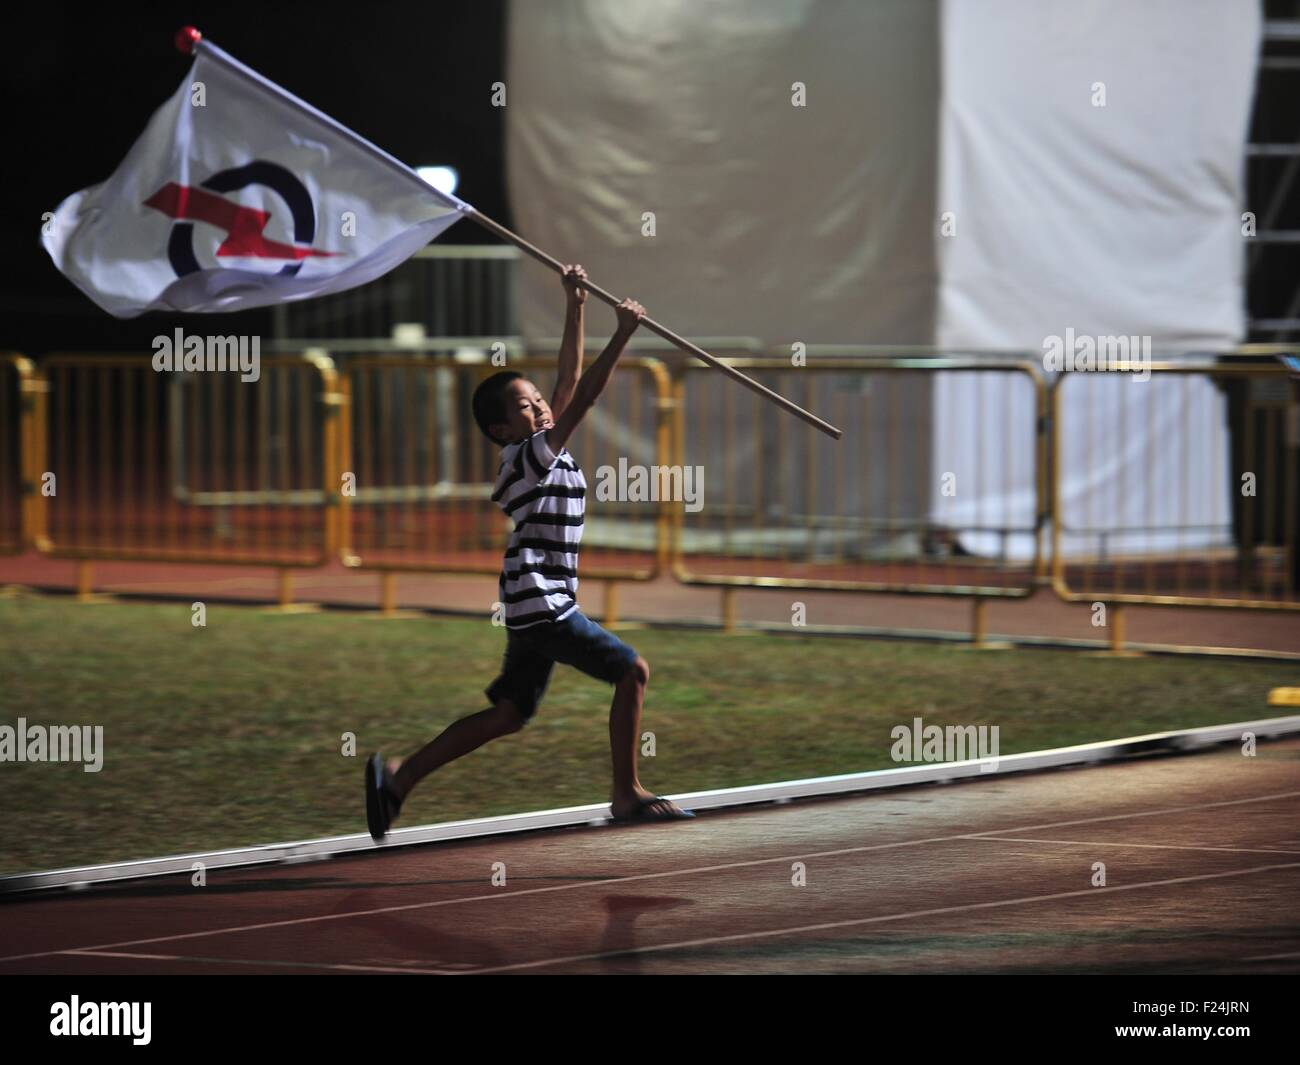 Singapore. 12th Sep, 2015. A young supporter of Singapore's People's Action Party (PAP) runs holding the - Stock Image